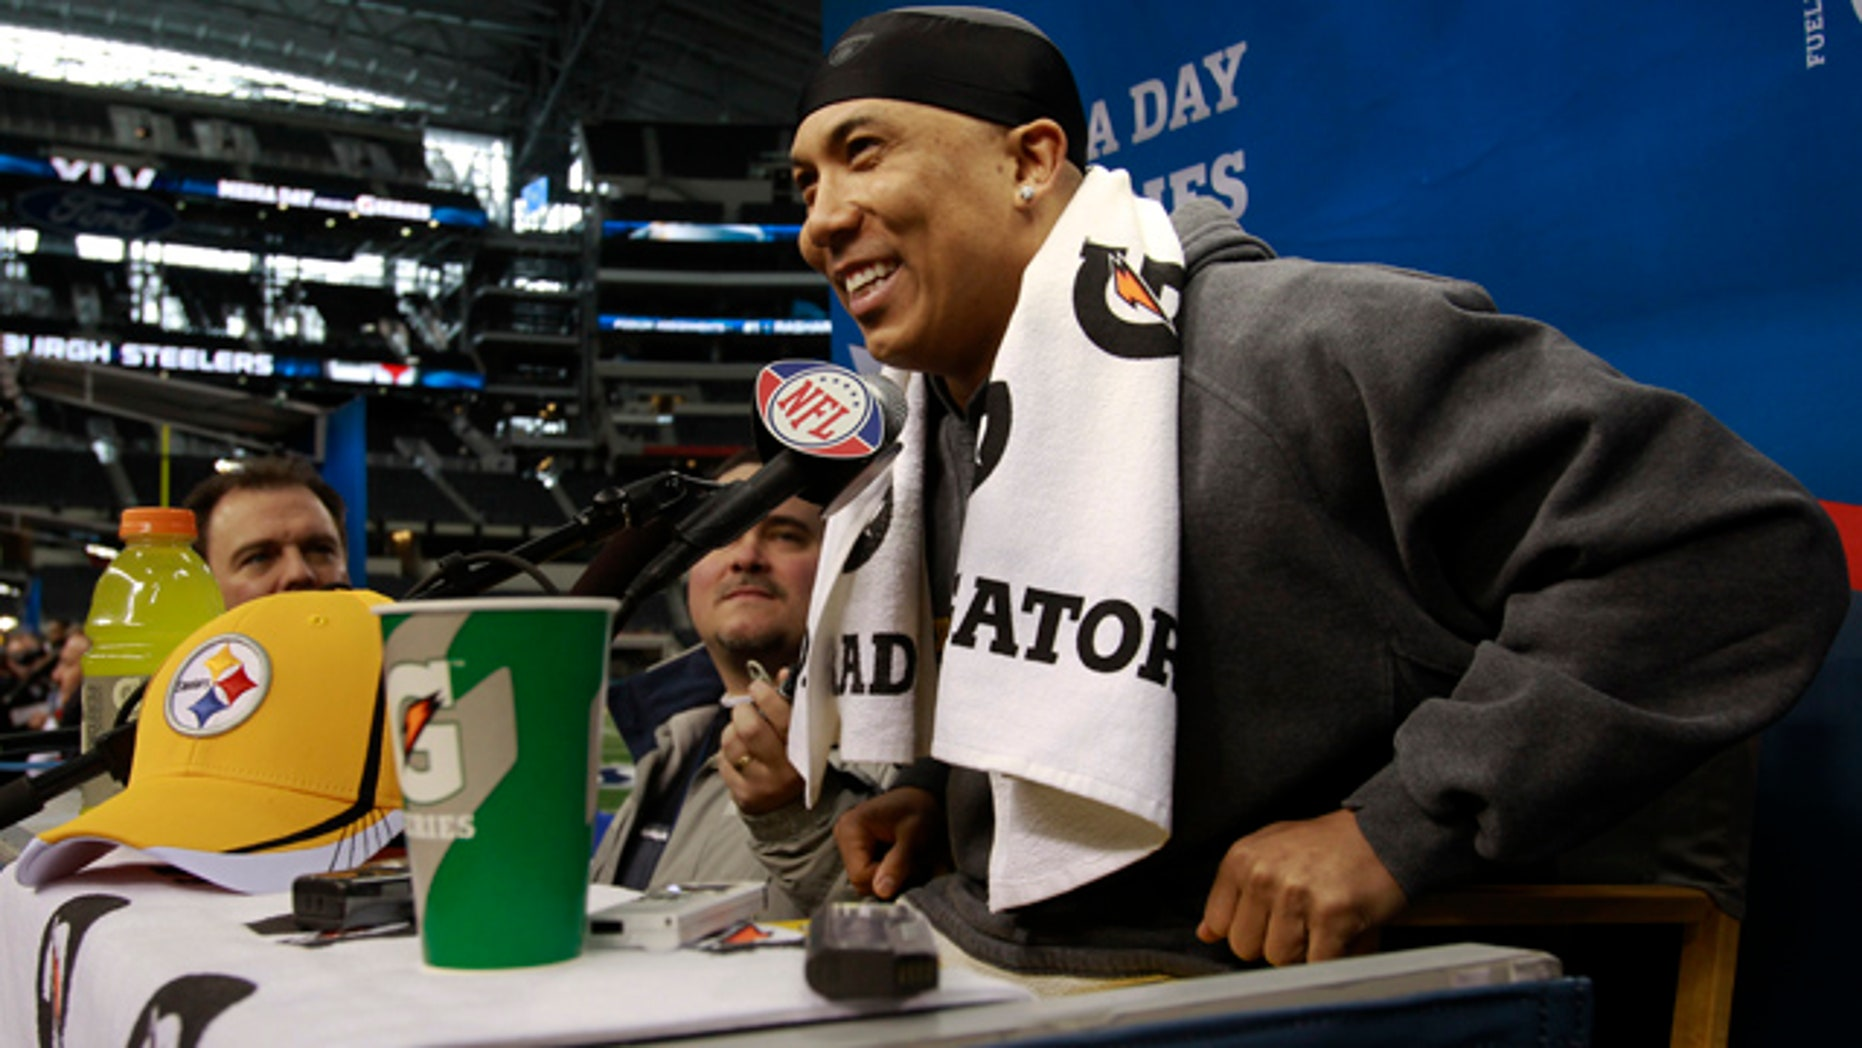 Feb. 1: Pittsburgh Steelers' Hines Ward smiles as he answers questions during media day for NFL football Super Bowl XLV in Arlington, Texas.